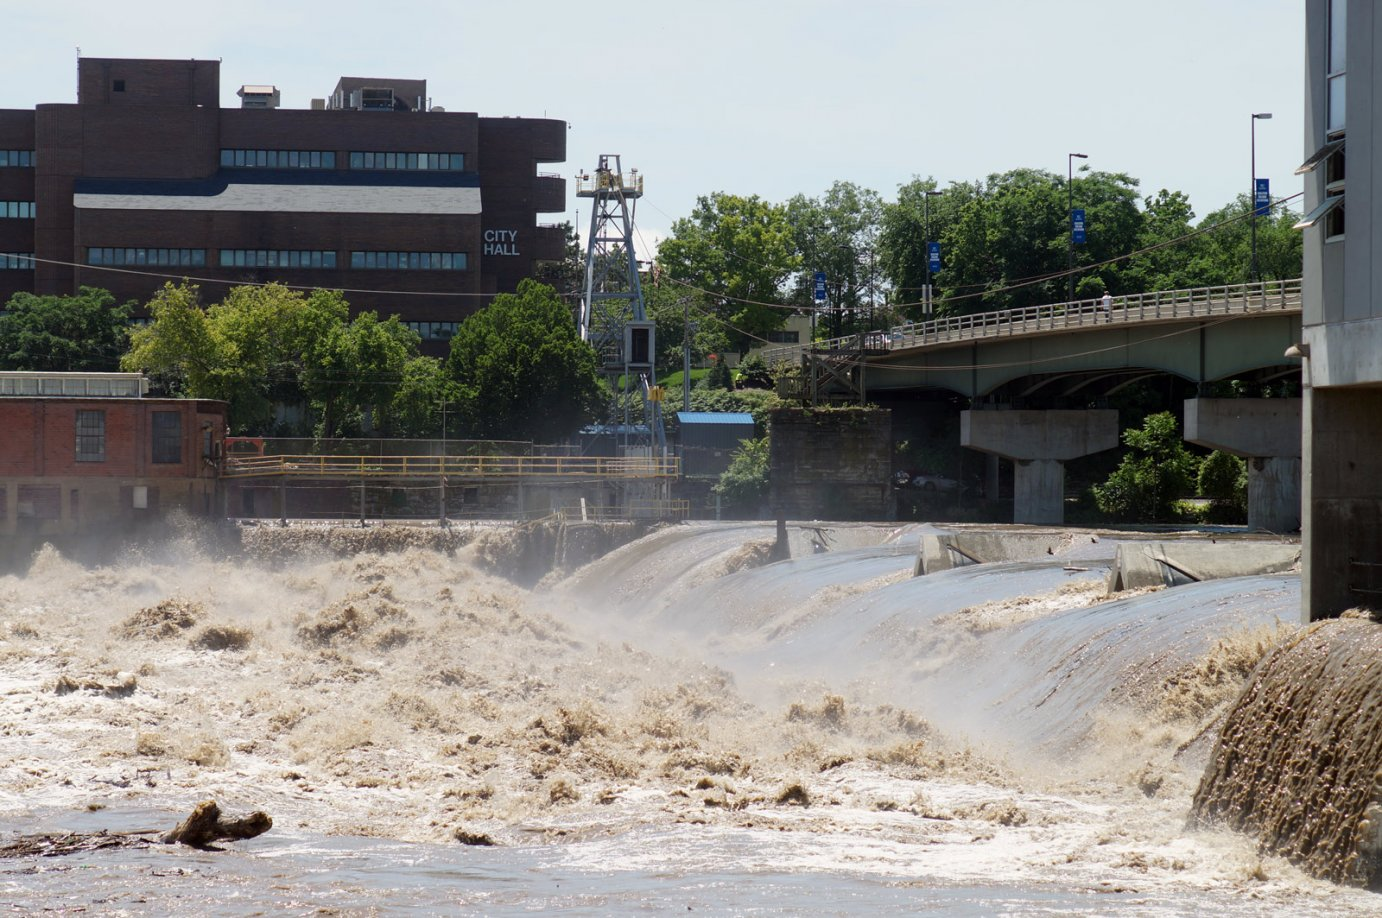 The muddy Kansas River surges past City Hall in Lawrence, KS on June 5th, 2015. Photo by Dan Mantyla.